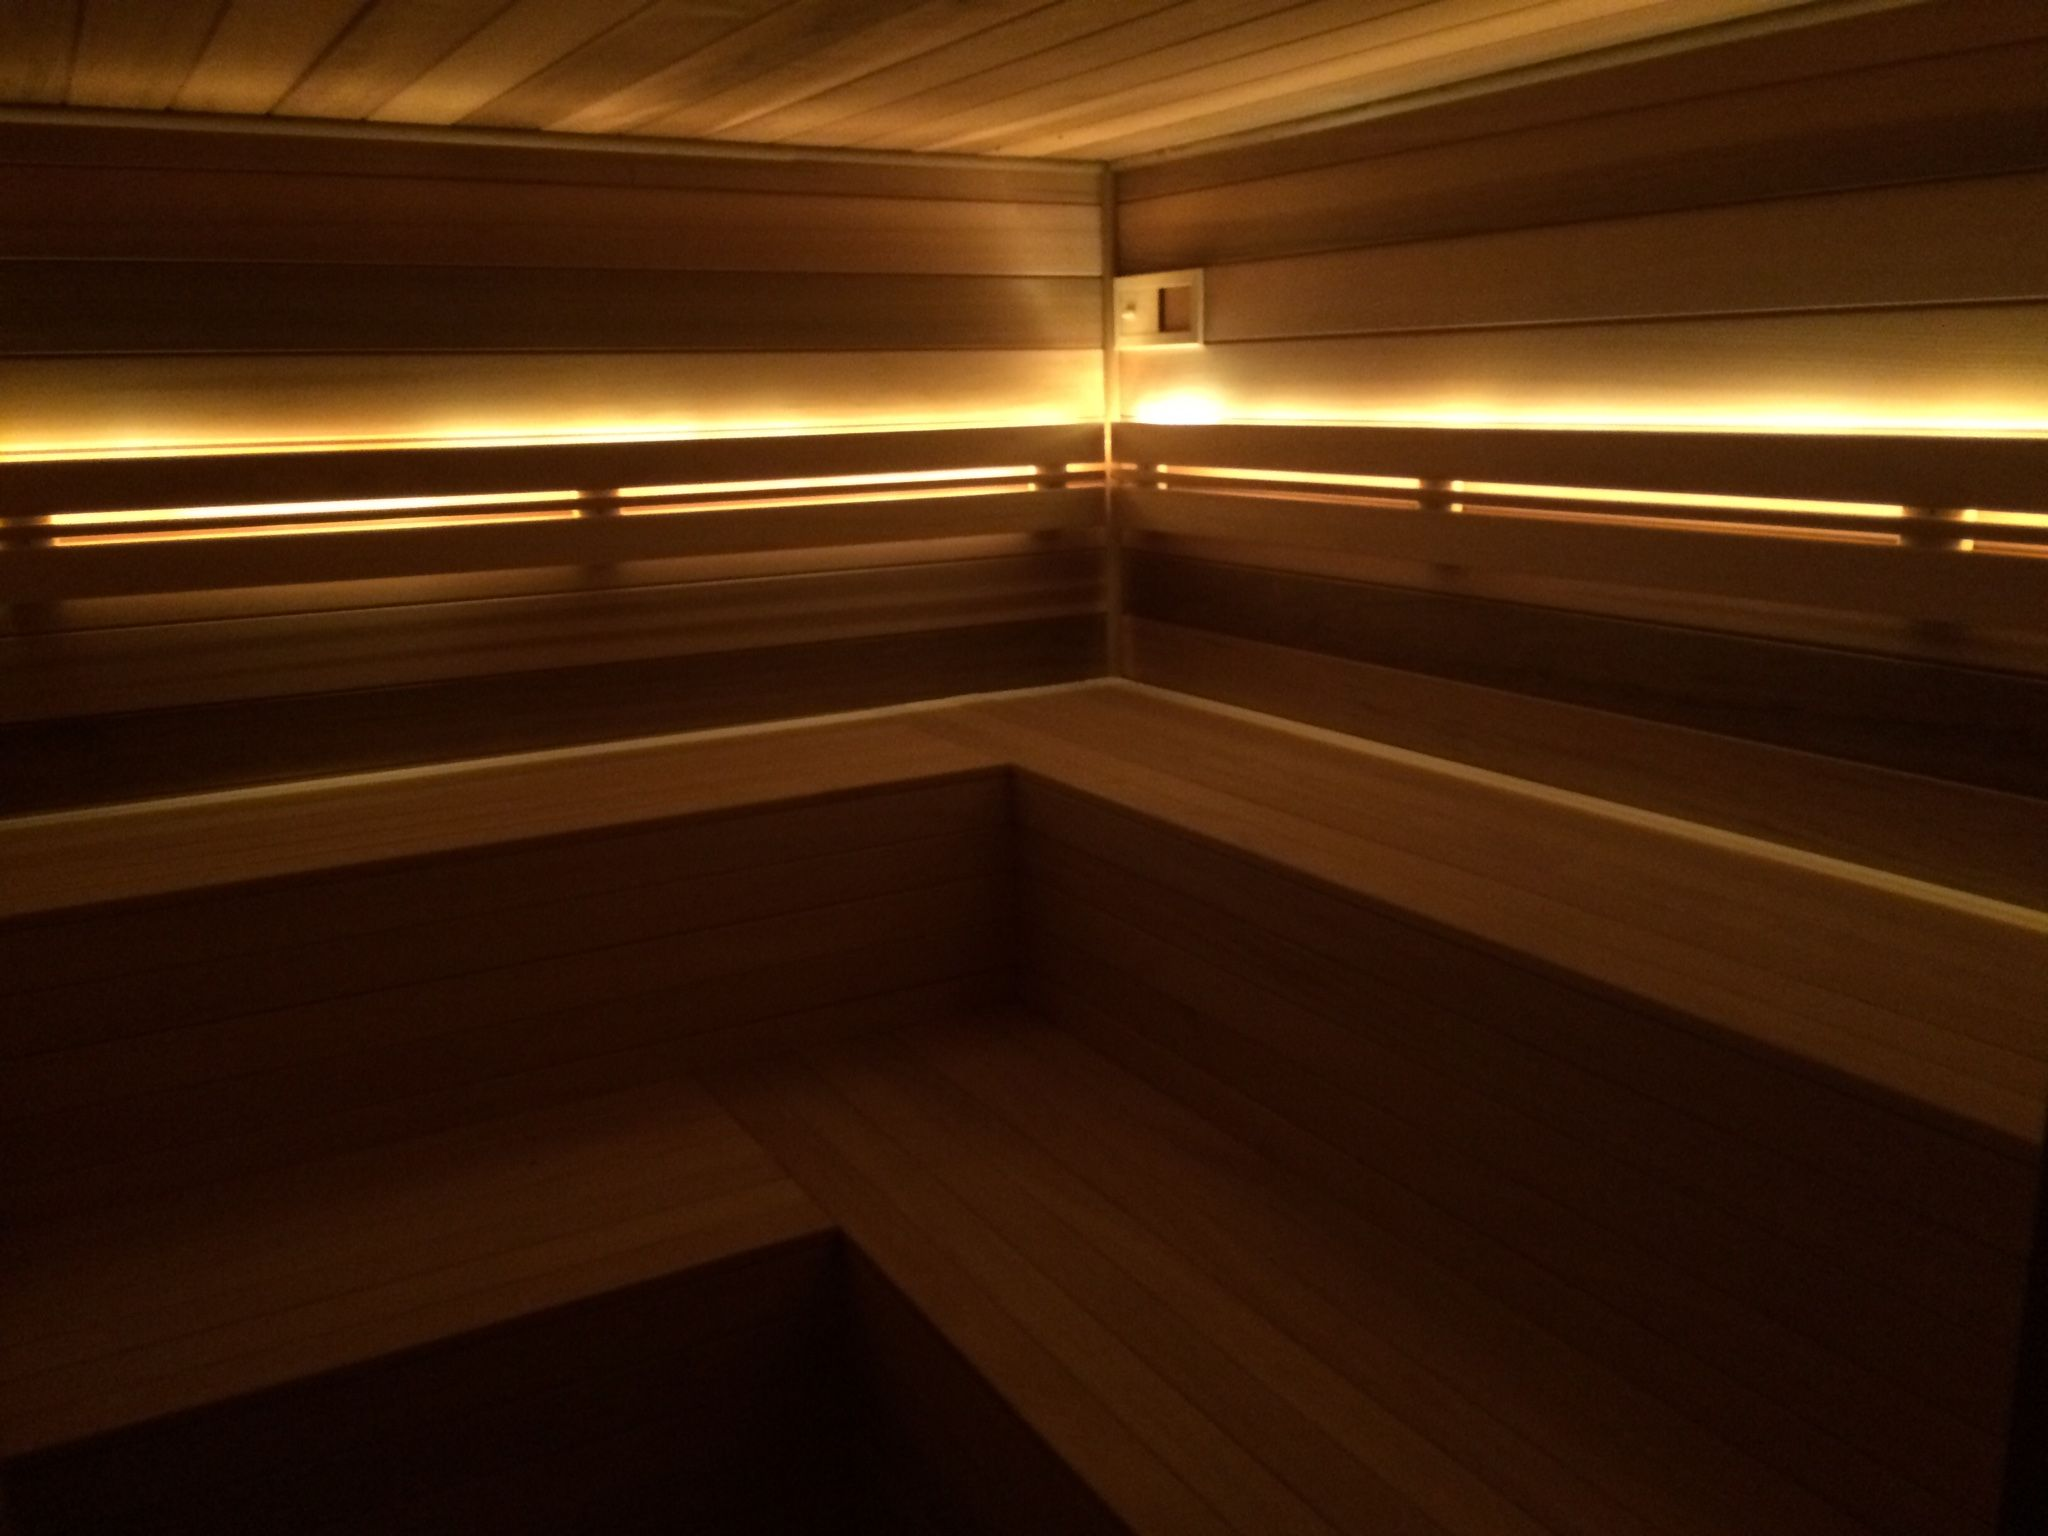 led strips warmwit in sauna - Led Stripes In Der Dusche